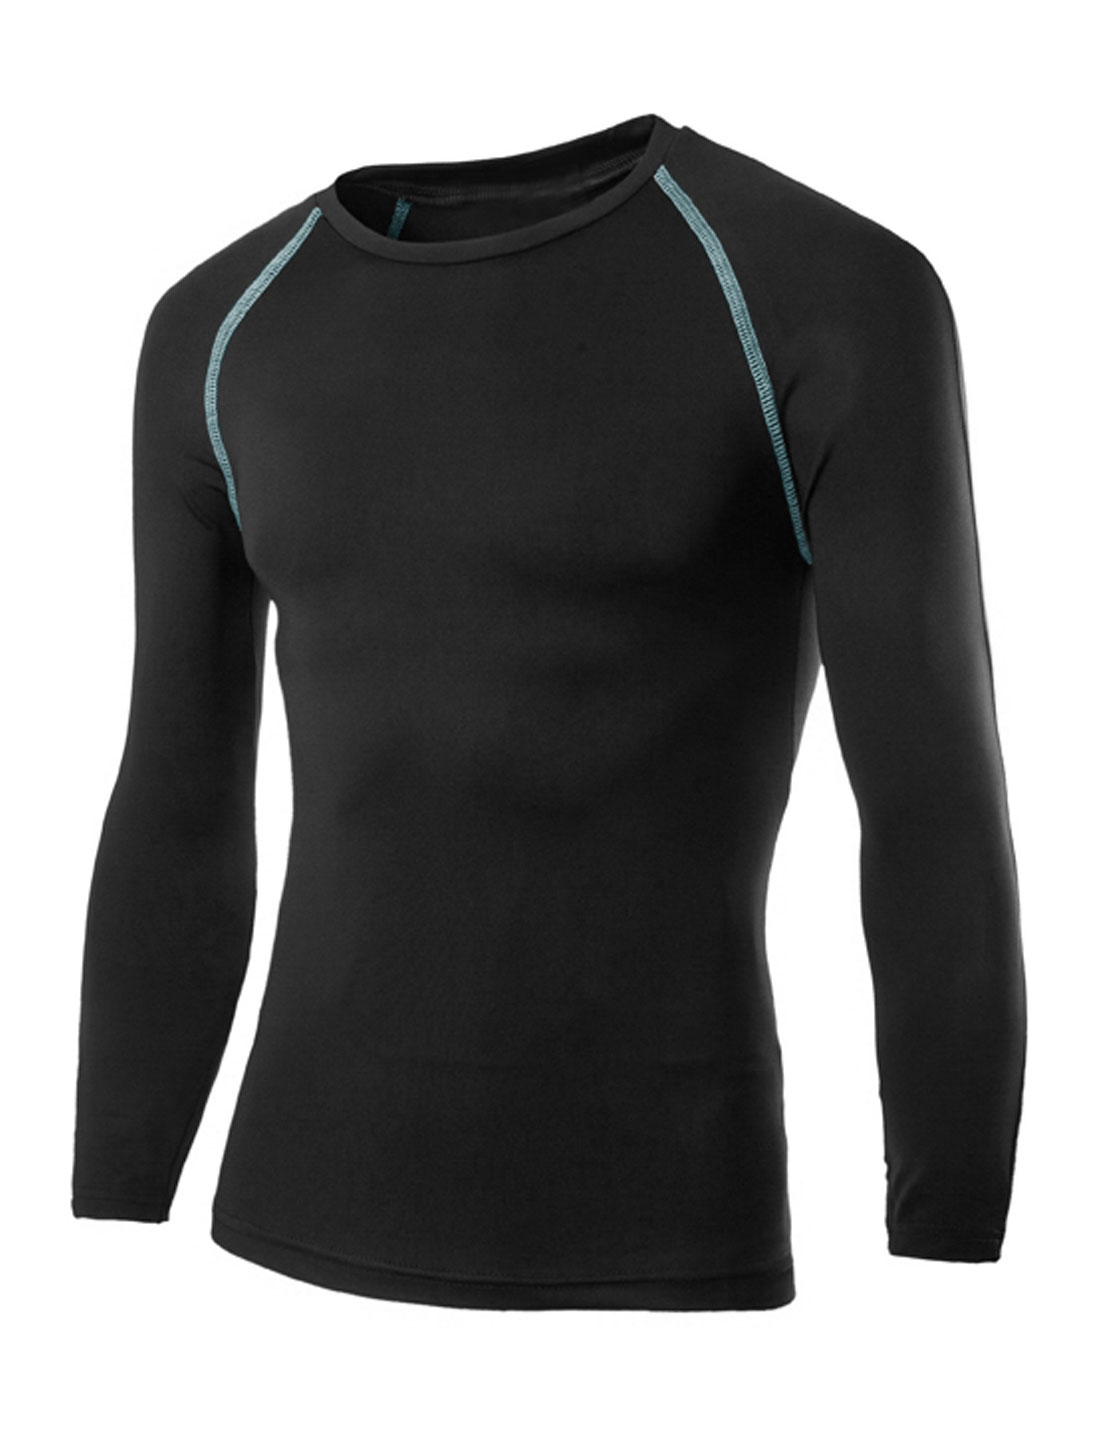 Men Seamed Detail Moisture-Wicking Long Sleeves T-Shirt Black M